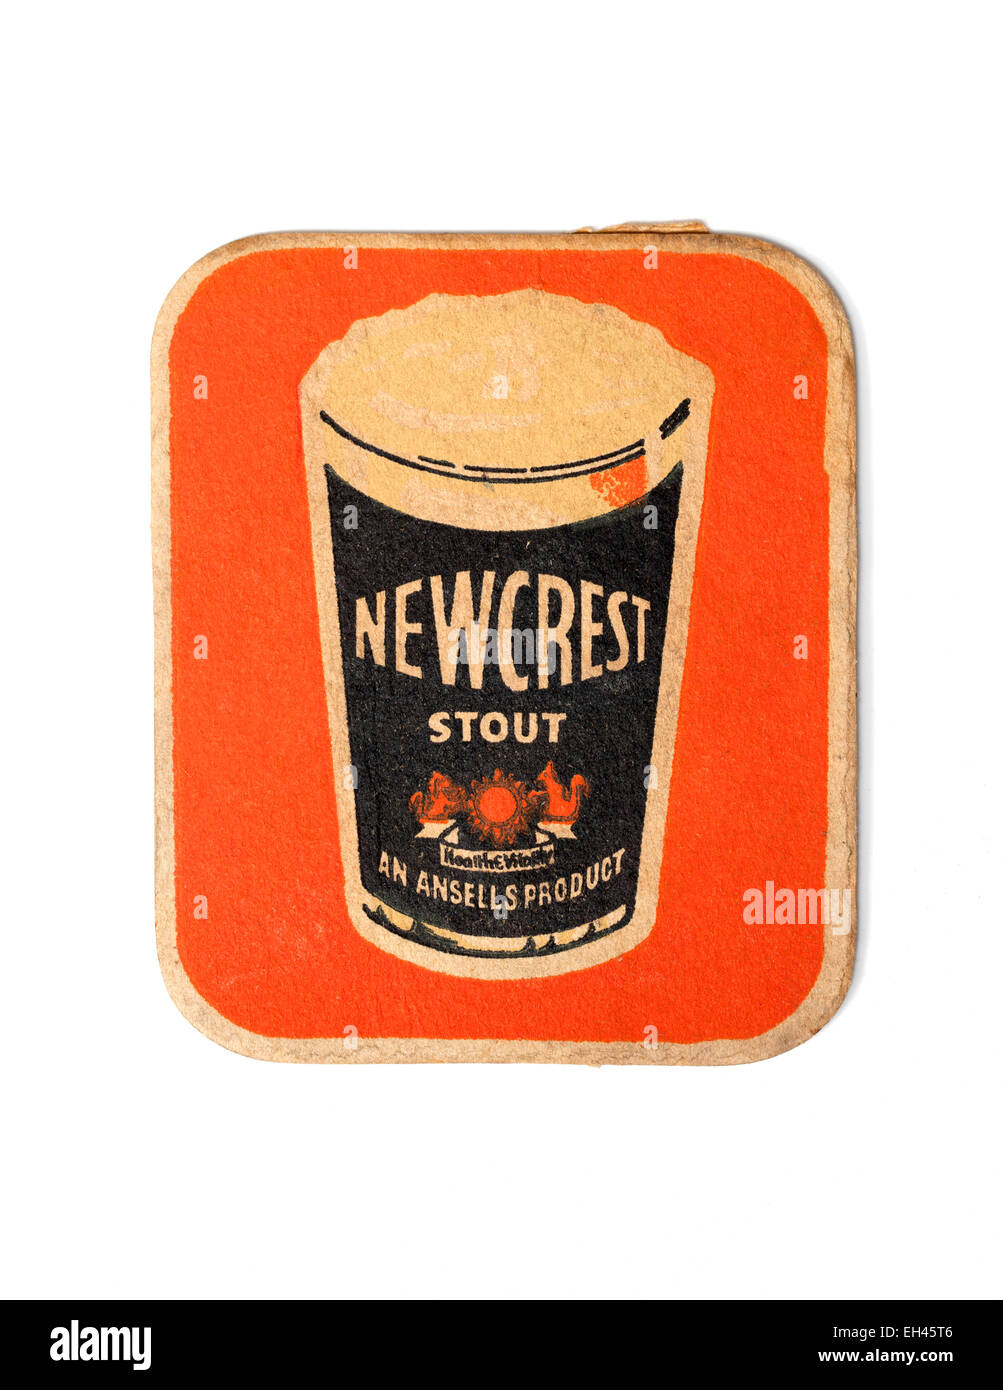 Vintage British Beermat Advertising Newcrest Stout Beer by Ansells Stock Photo